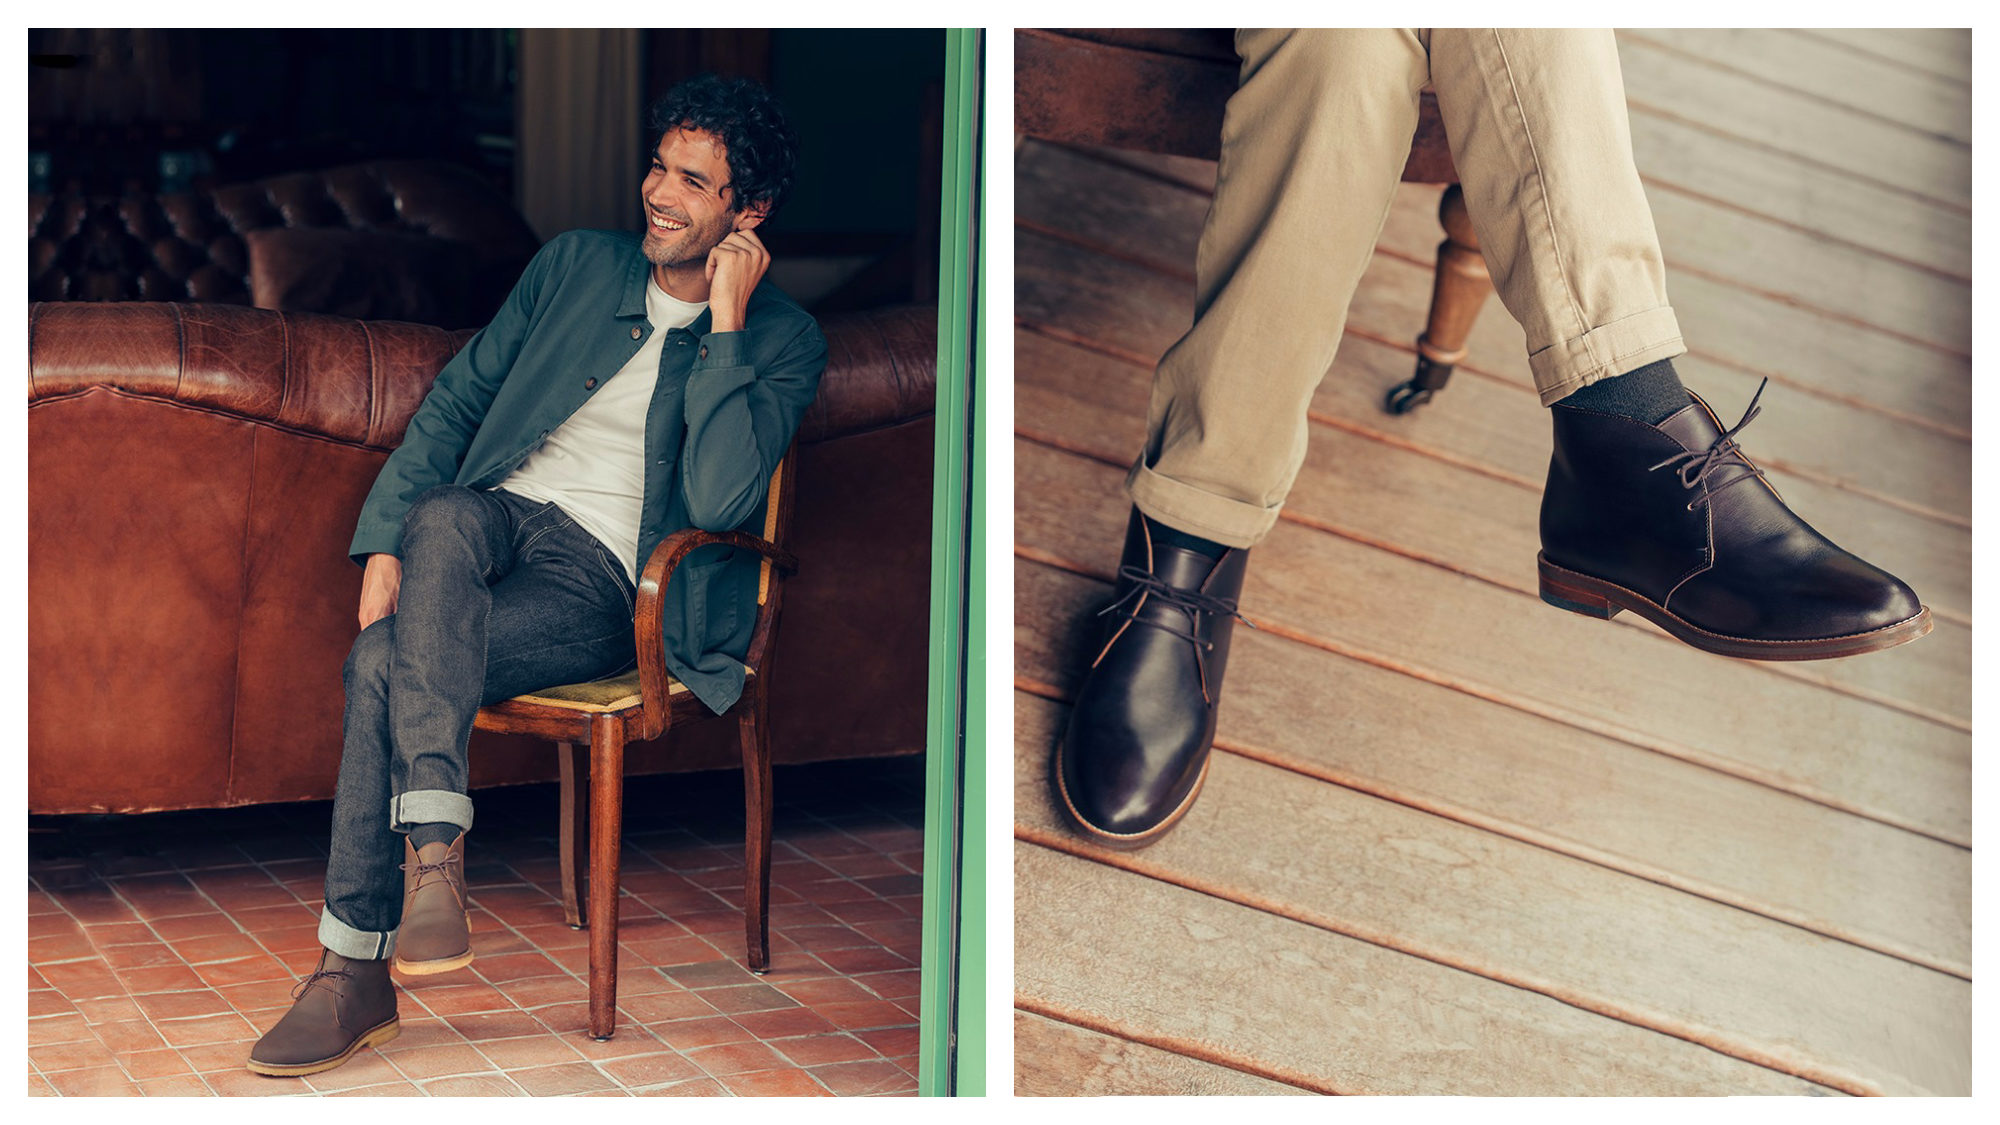 A male model sat on a wooden chair wearing a green shirt, white t-shirt, jeans and boots (left) and a shot of a man's legs and his black boots (right) from French shoe brand Pied de Biche.